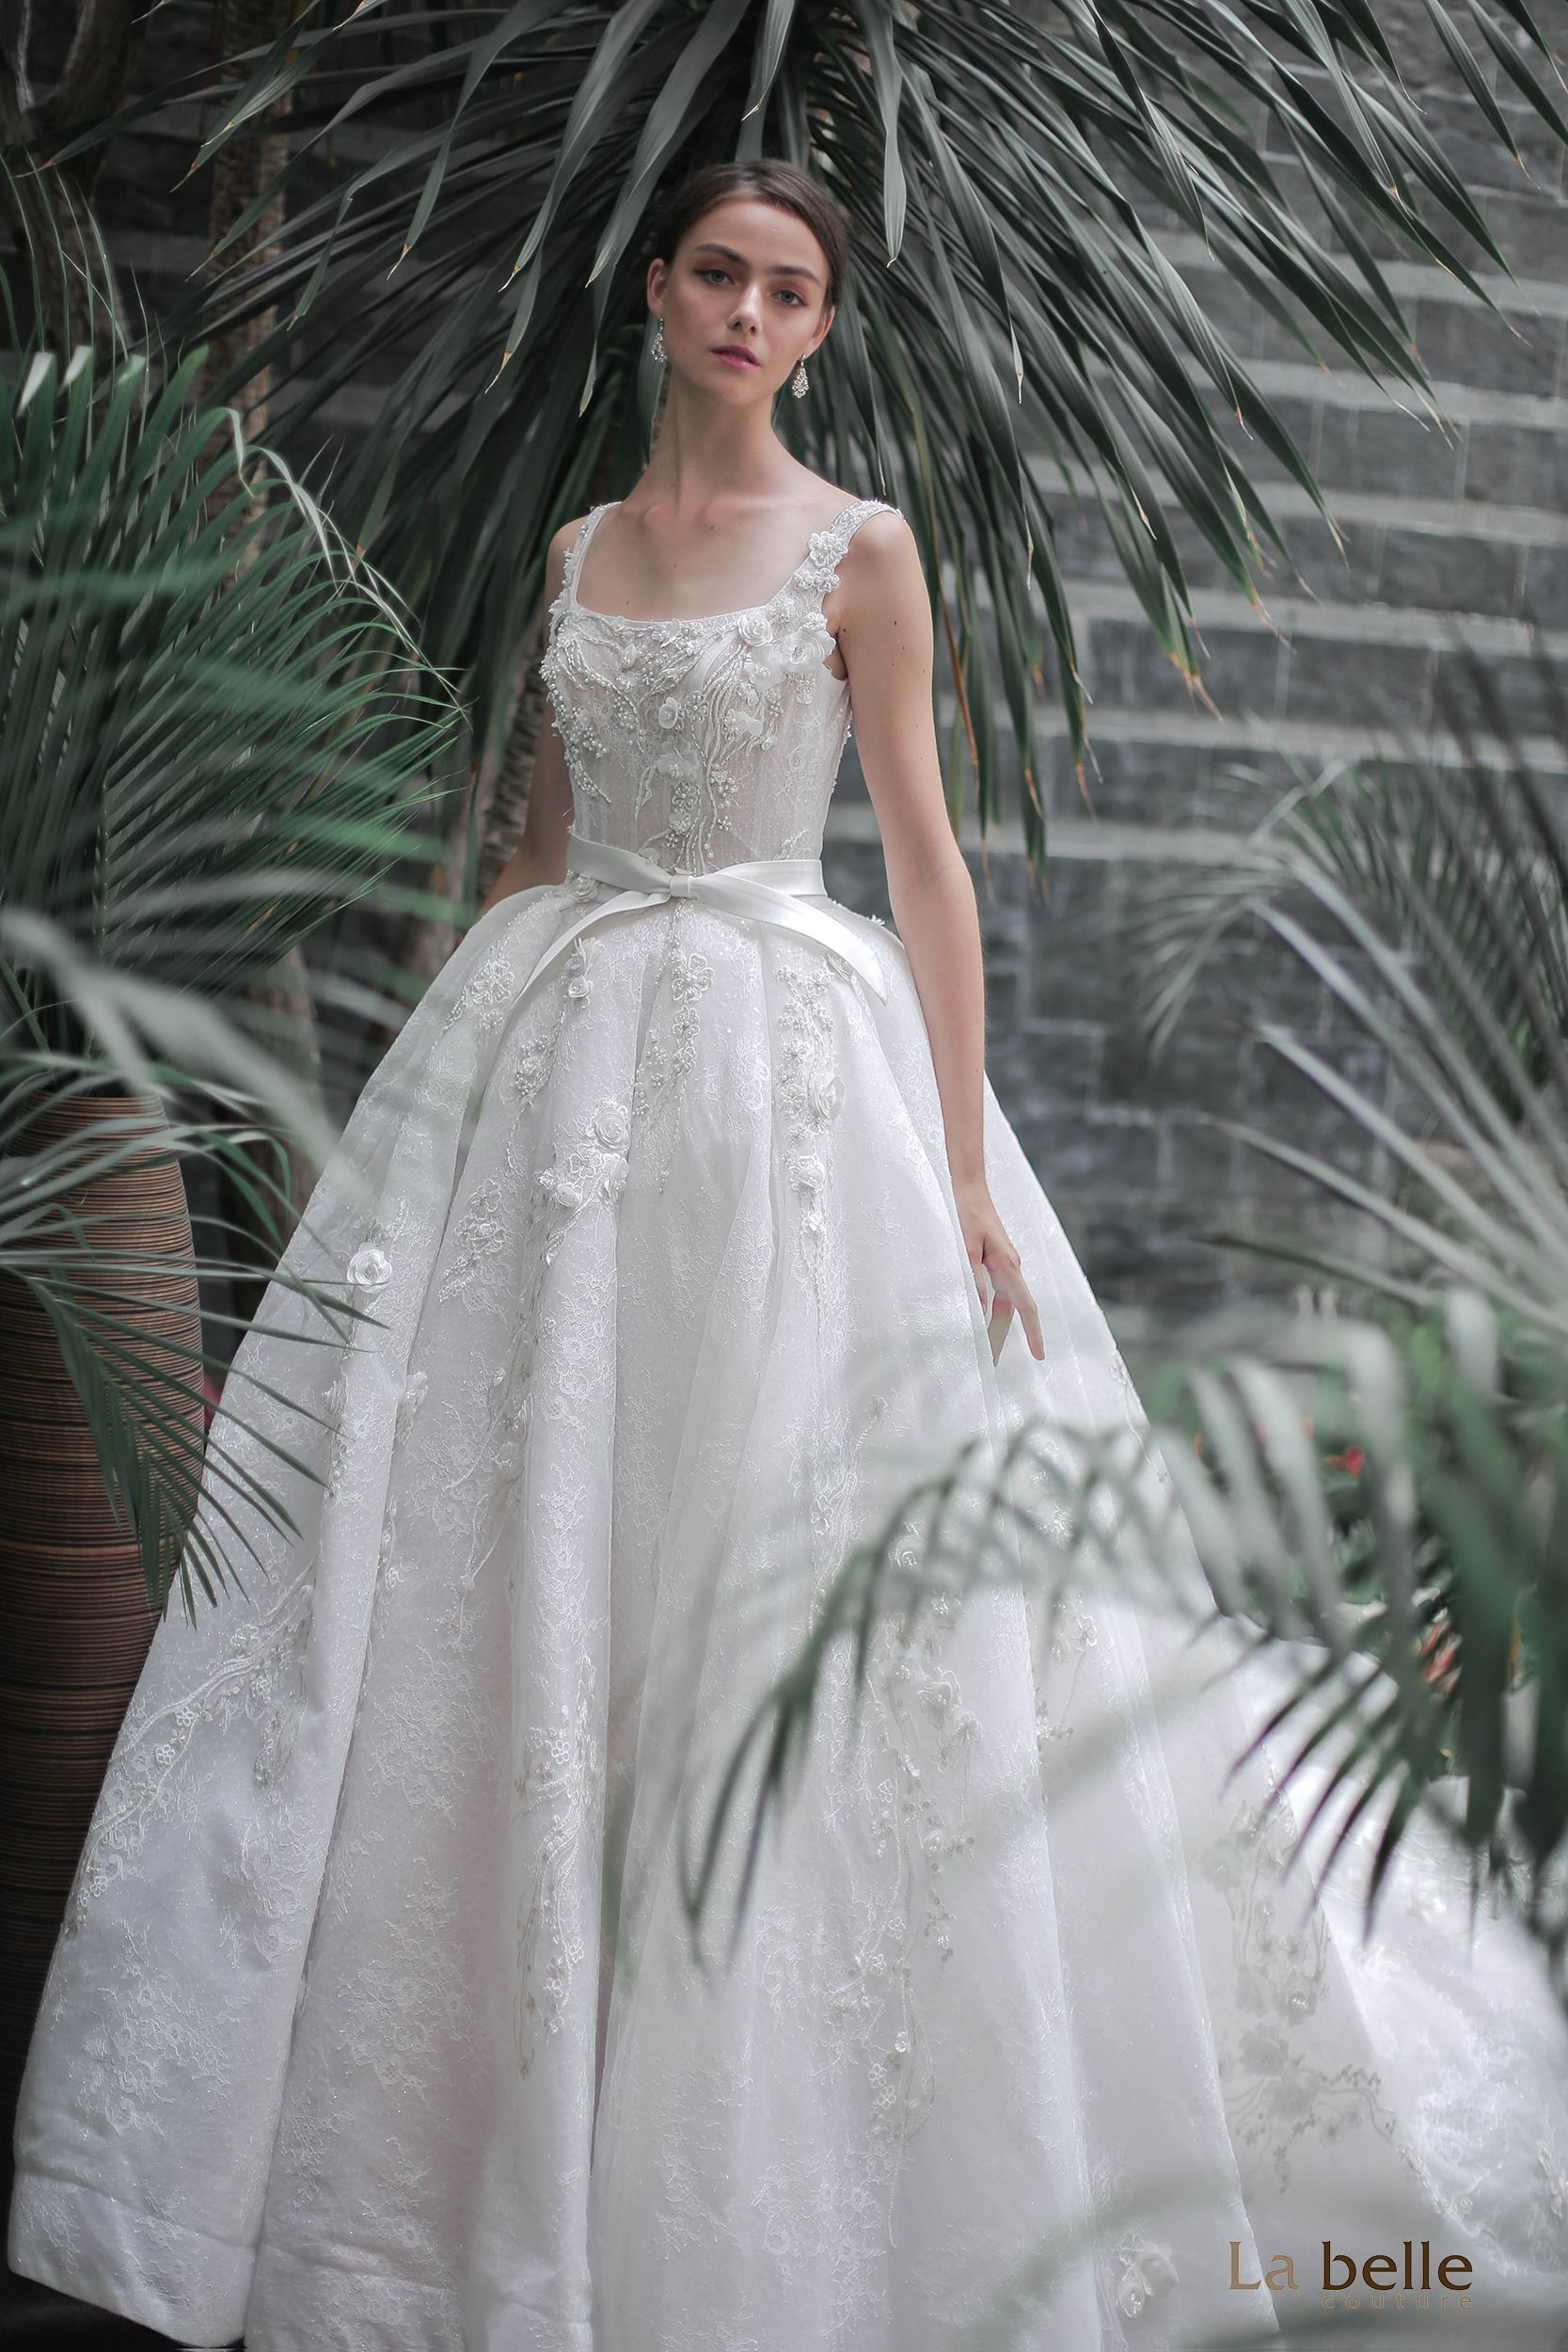 We absolutely love this gown from our Bloomingdale